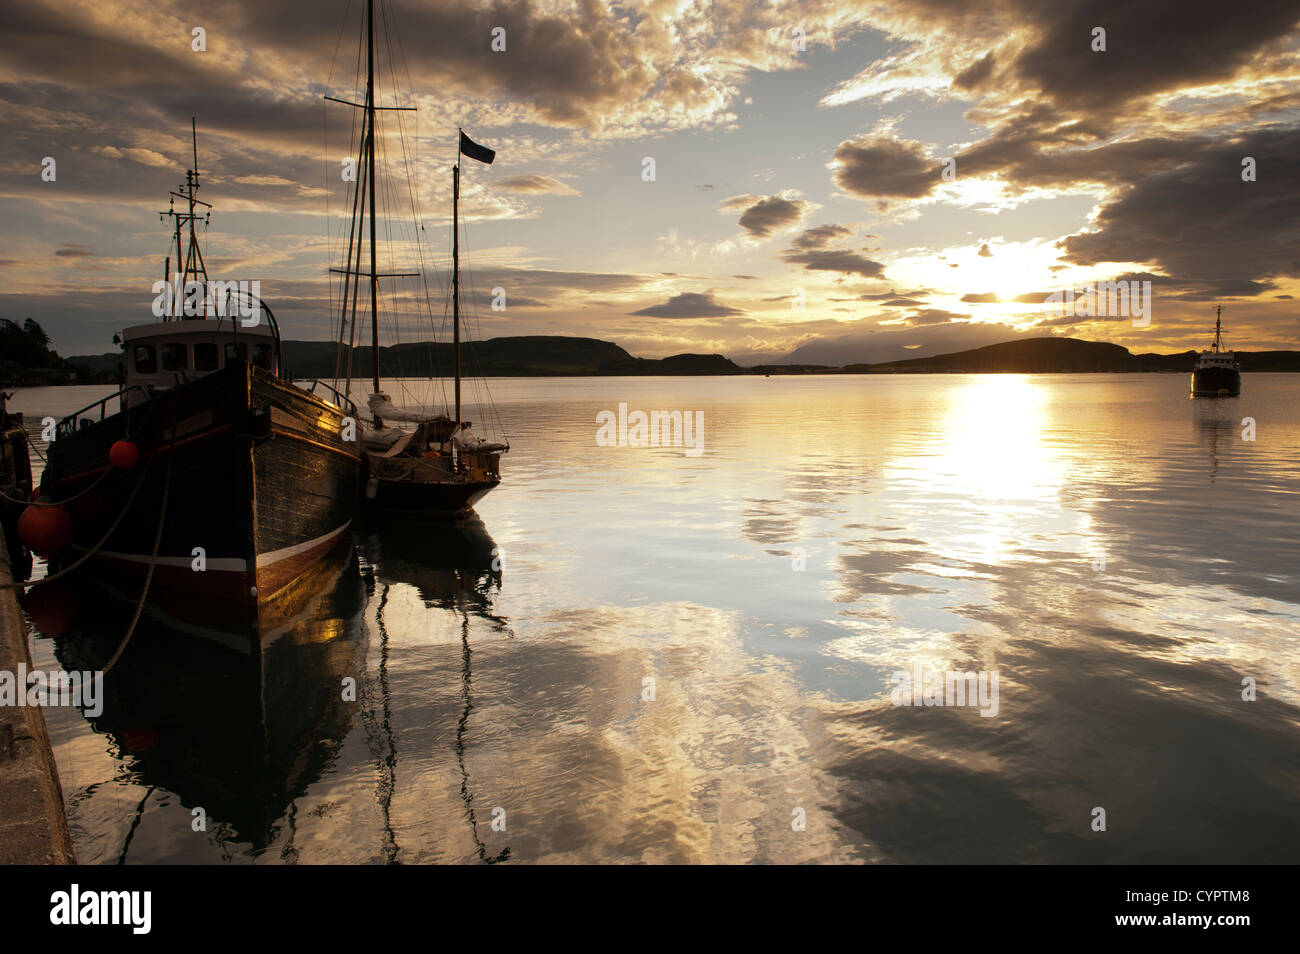 Sailboat in Oban Harbour on a summers evening. UK - Stock Image